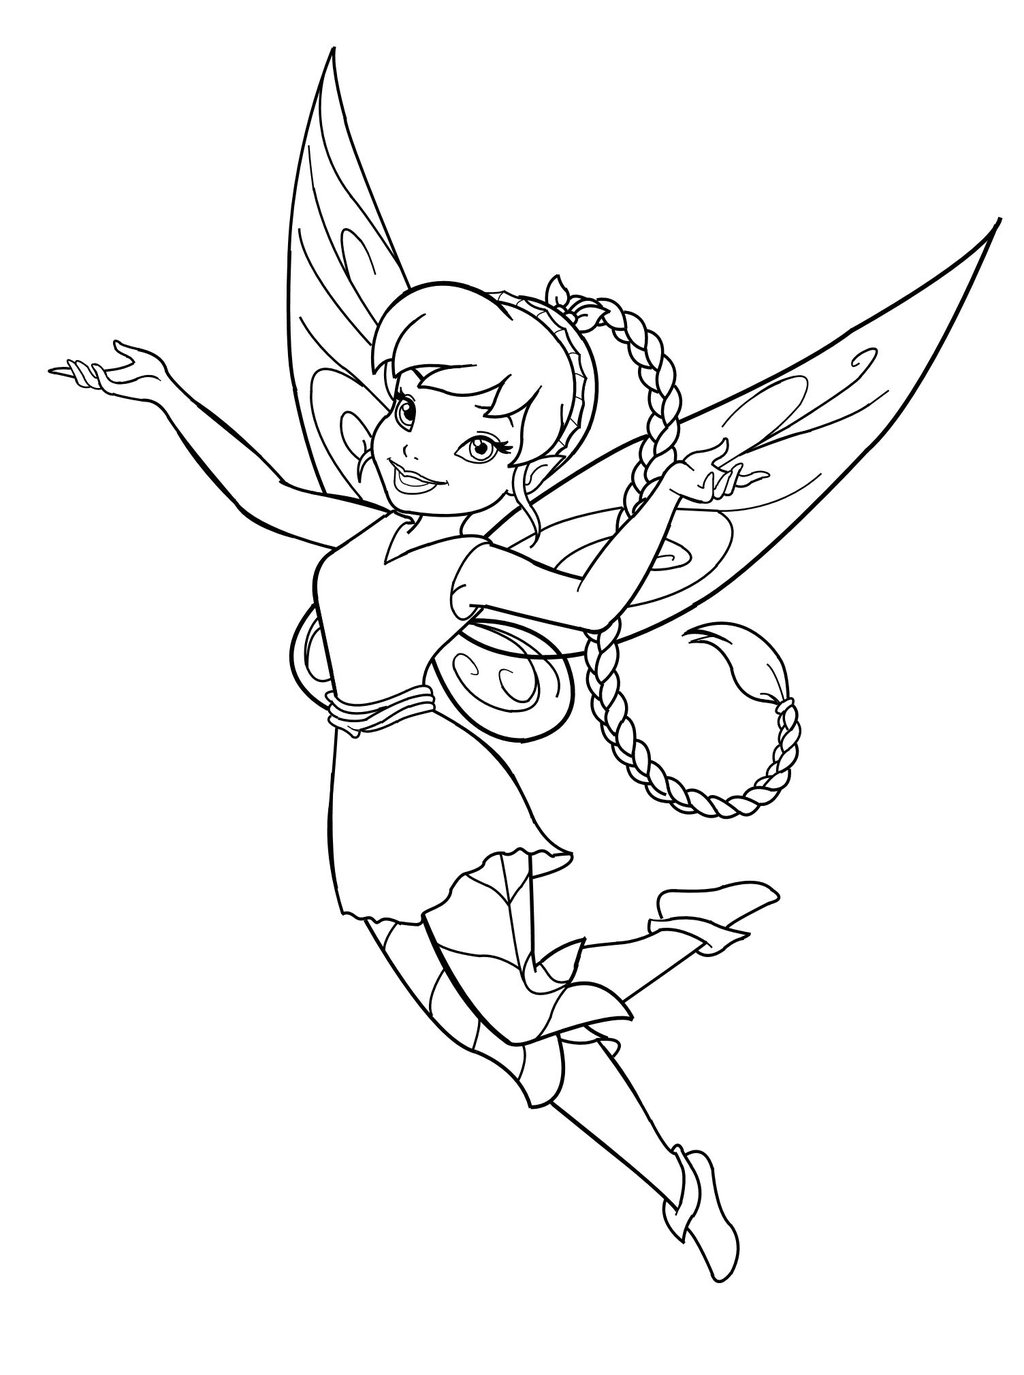 Disney fairs coloring pages ~ Free Printable Disney Fairies Coloring Pages For Kids